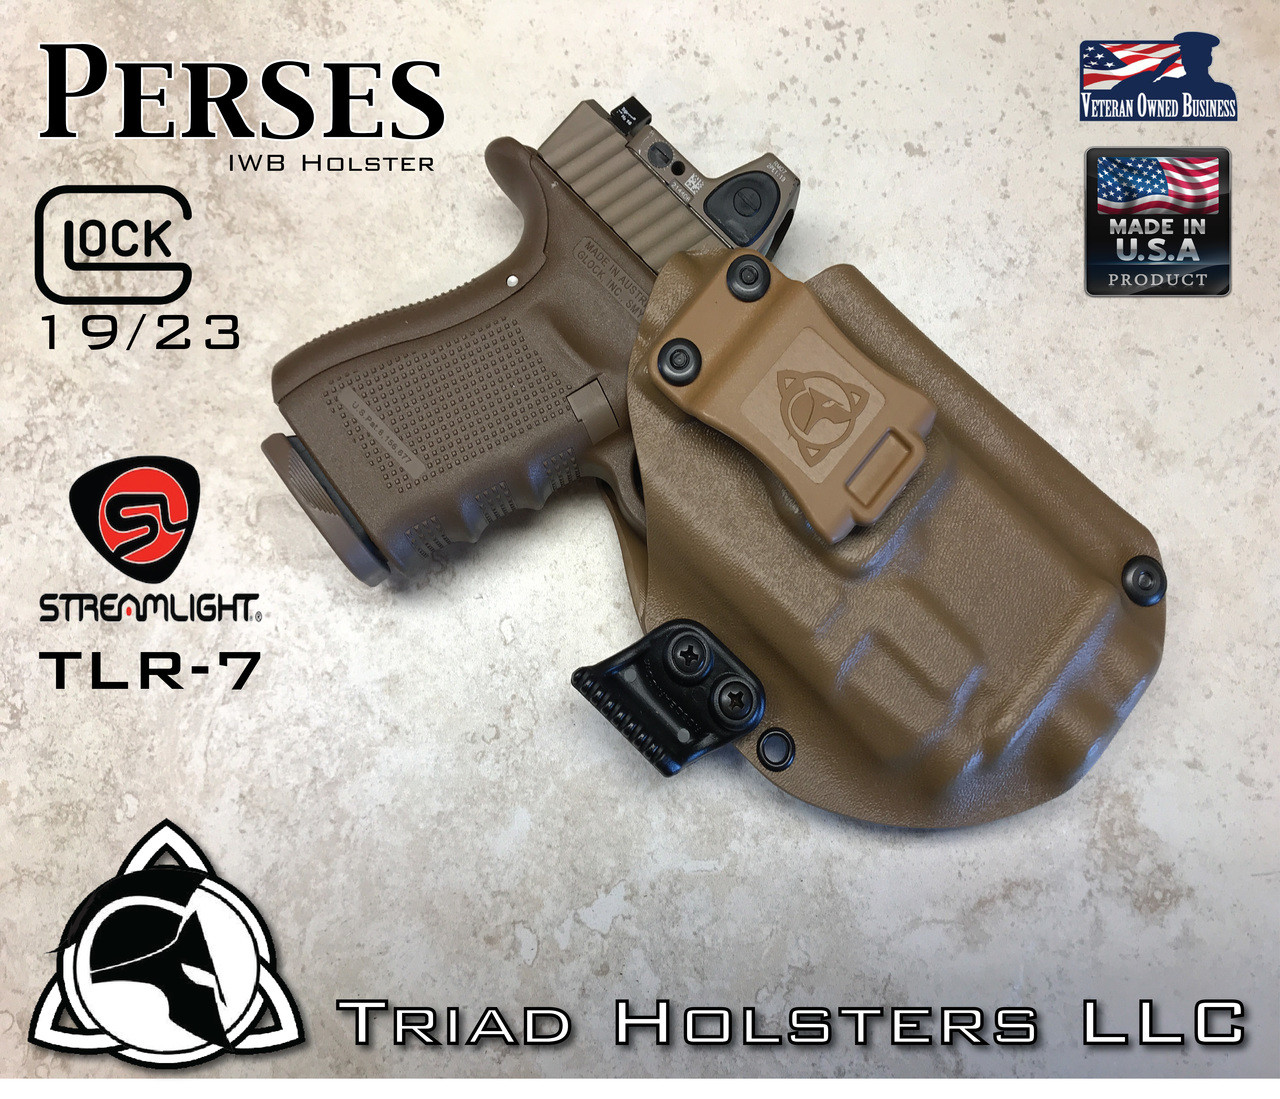 Kydex Holster Glock 19/23 and Streamlight TLR-7 with RMR Perses IWB Inside  the Waistband